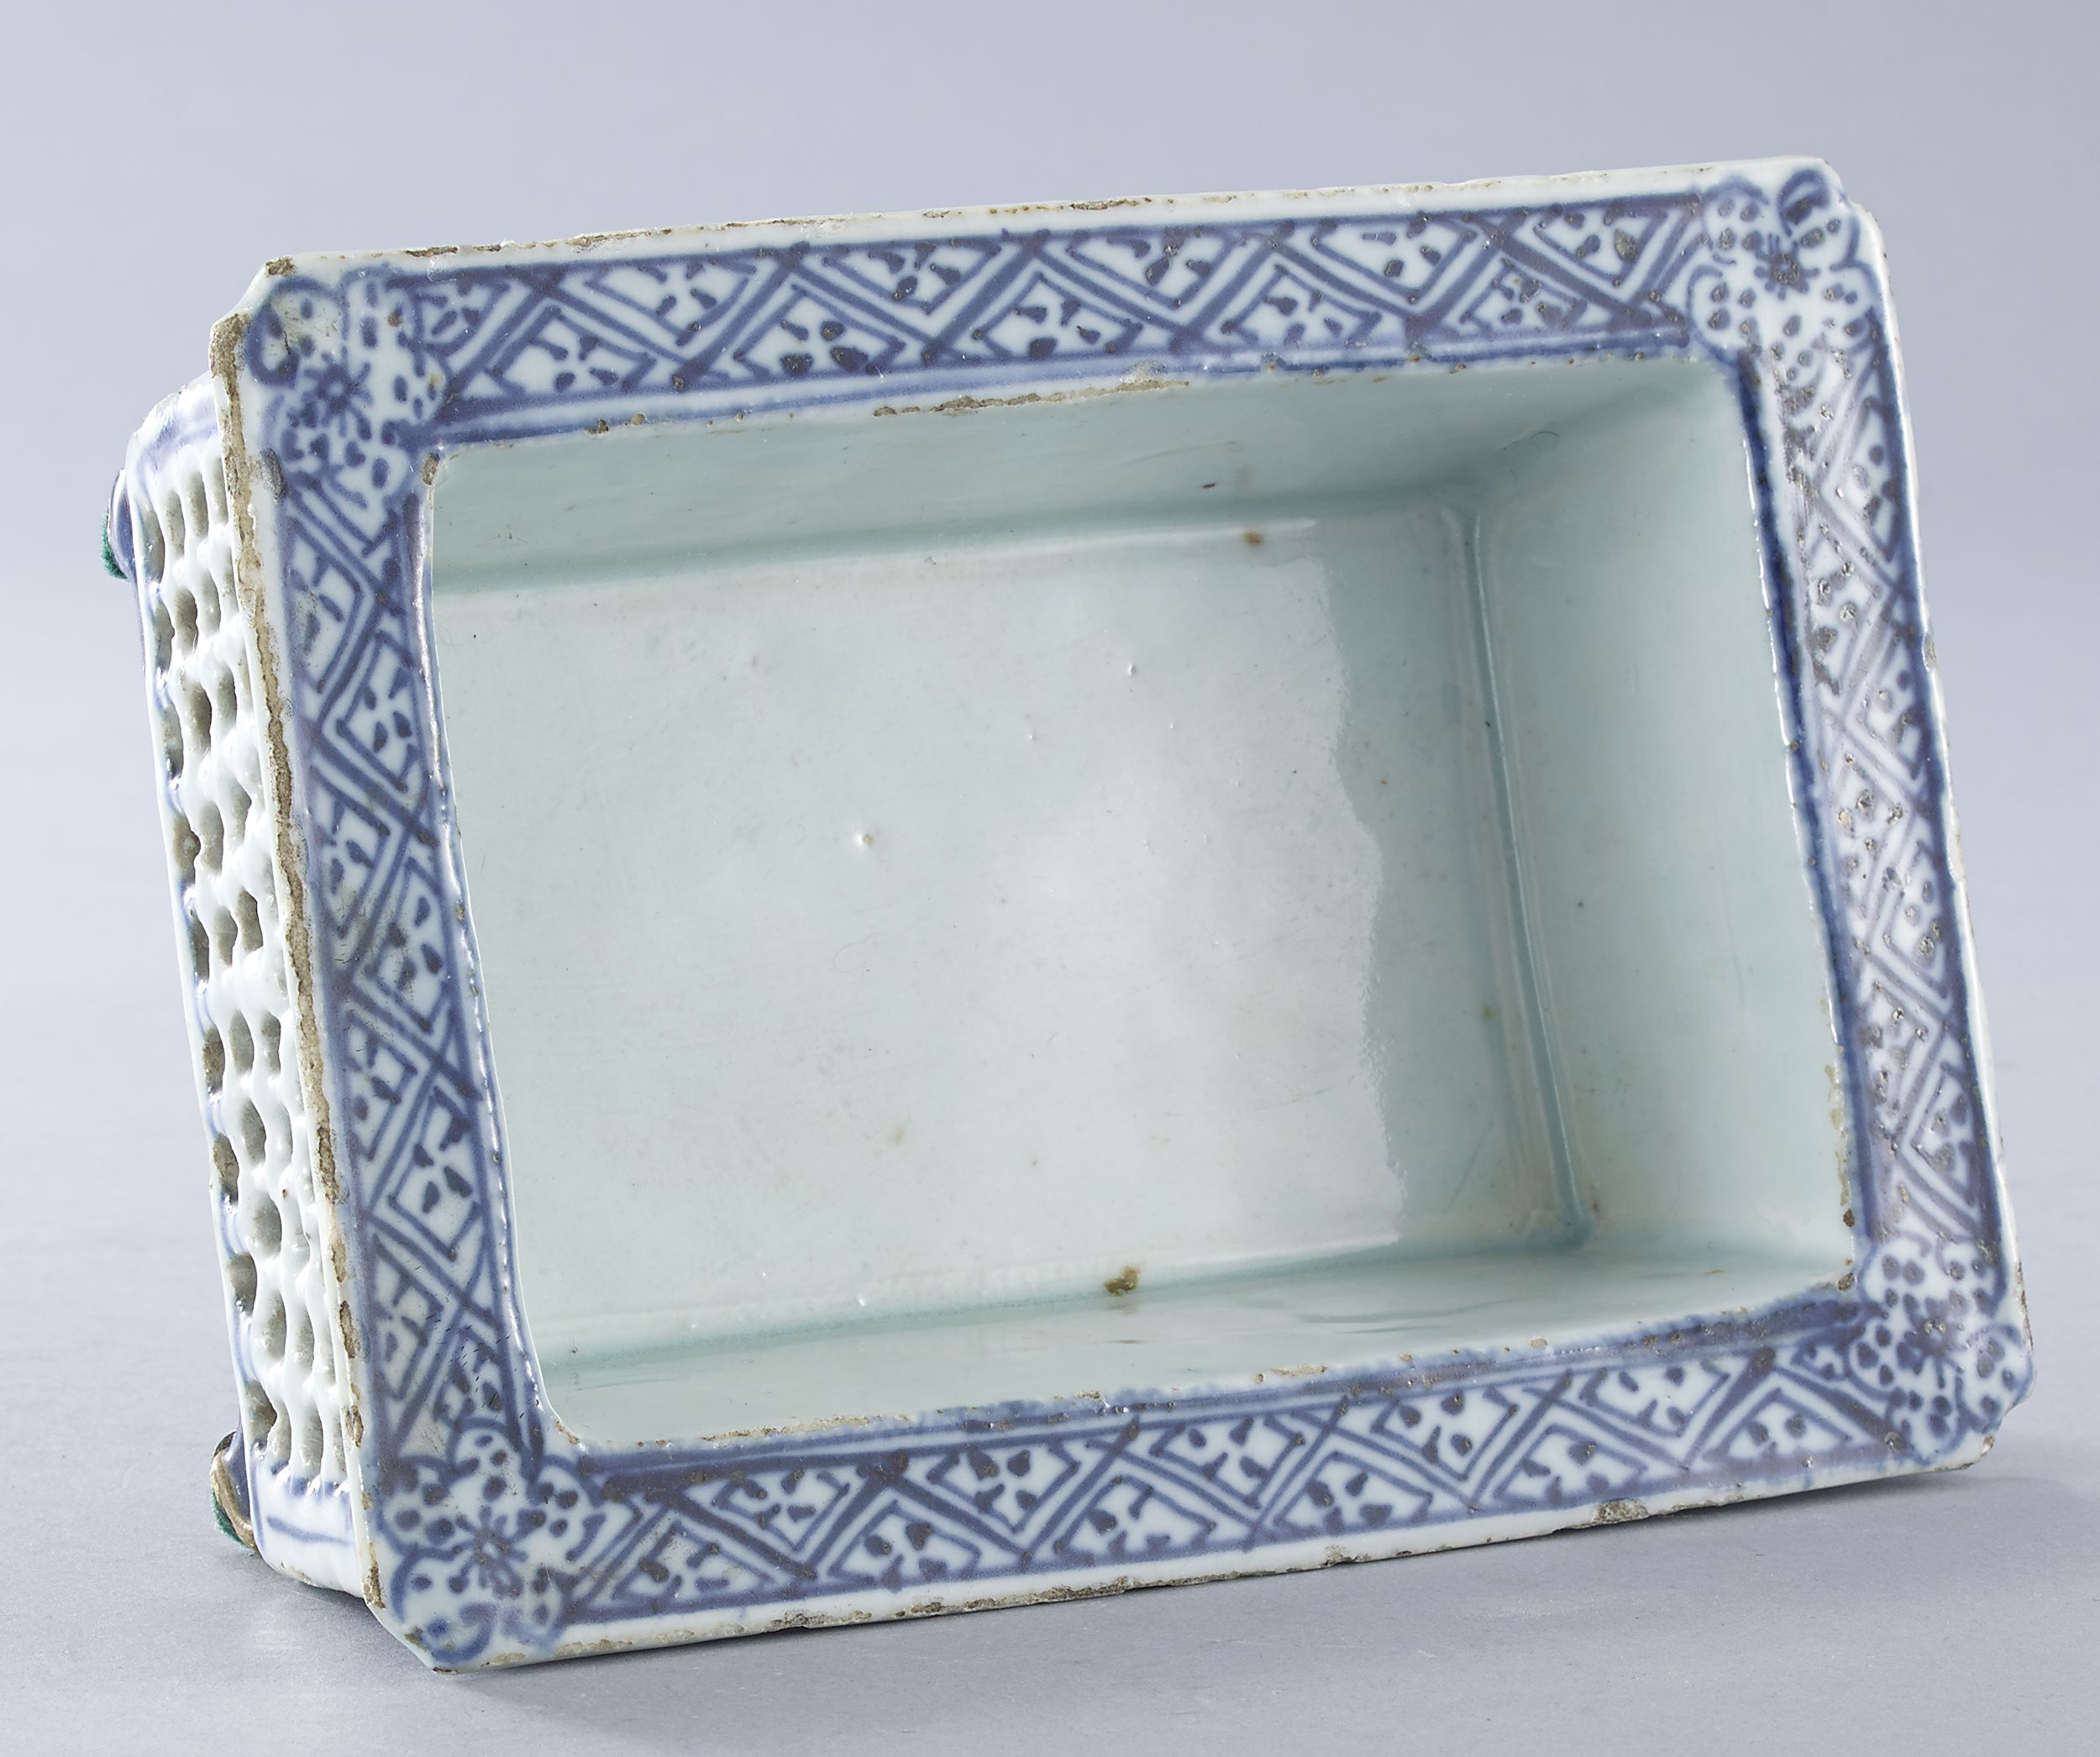 A Blue and White Jardinière